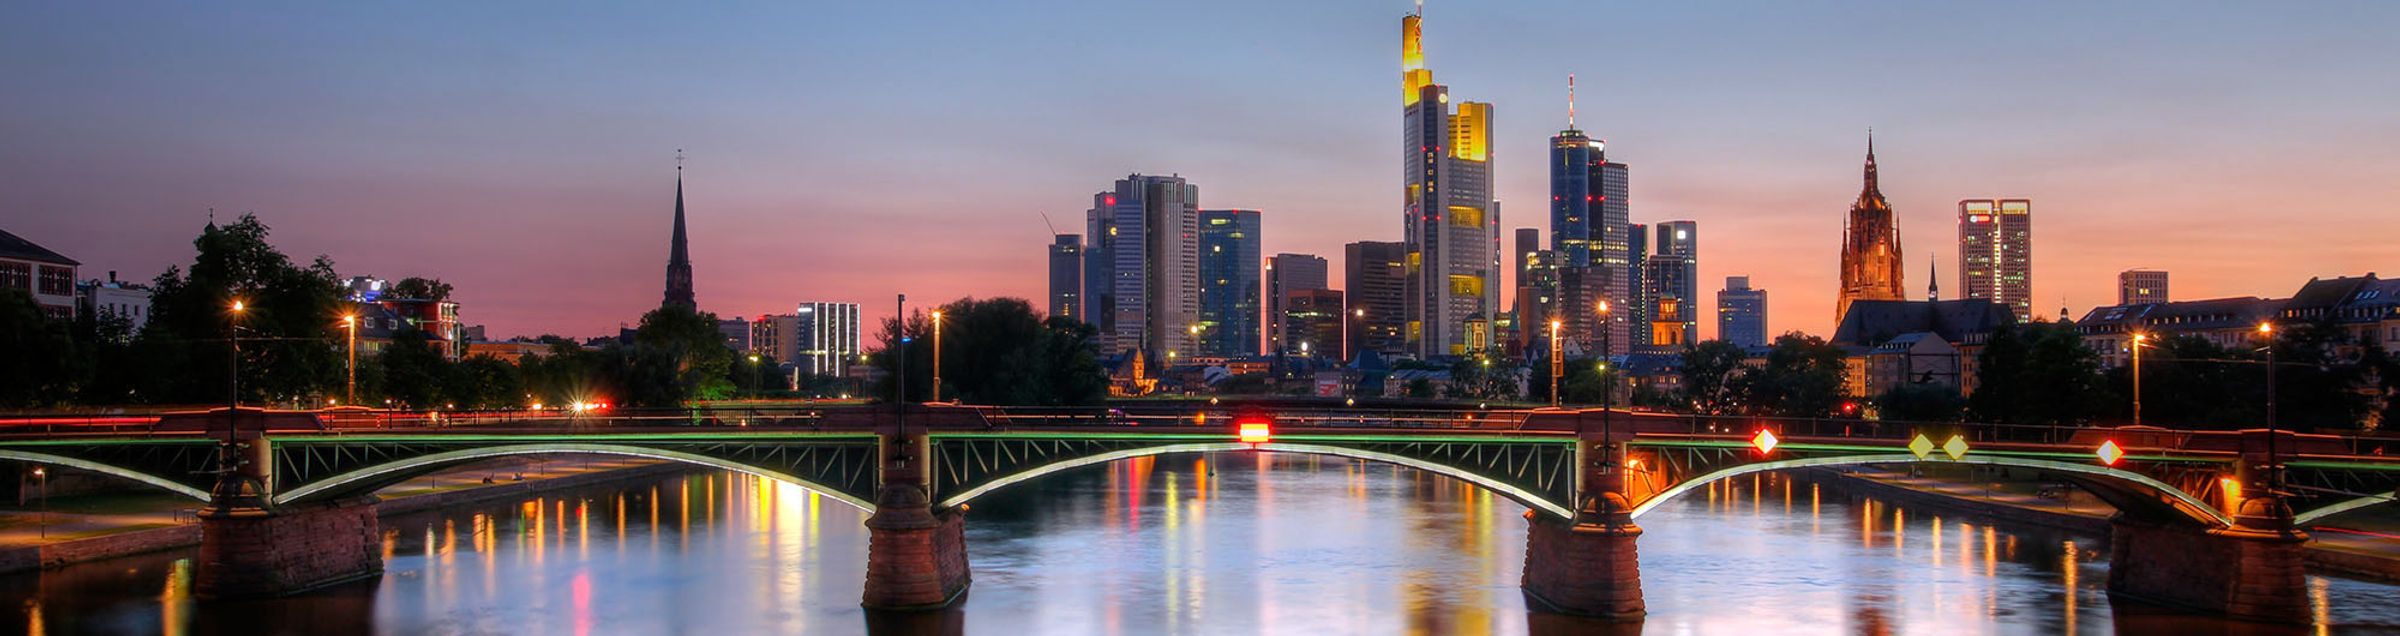 Frankfurt am Main